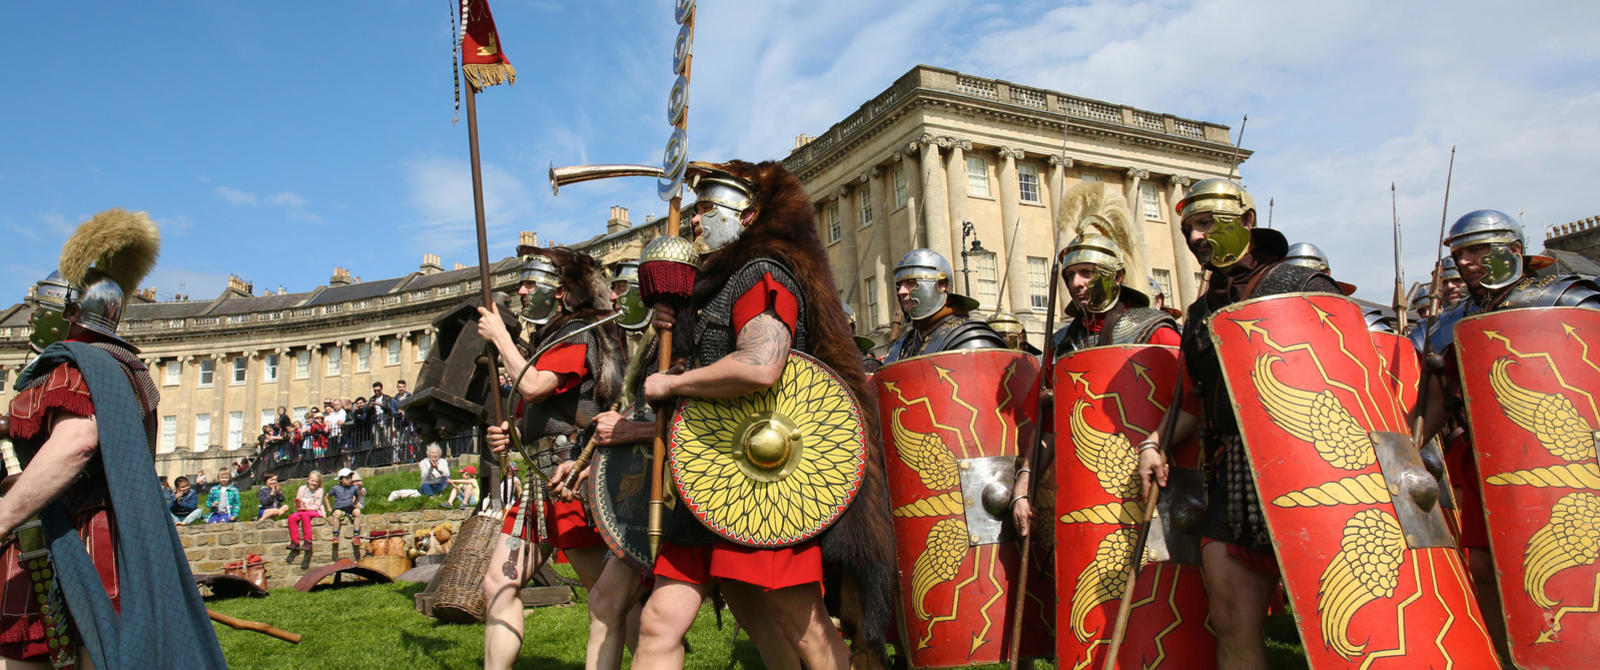 Image of Roman soldiers marching outside the Royal Crescent